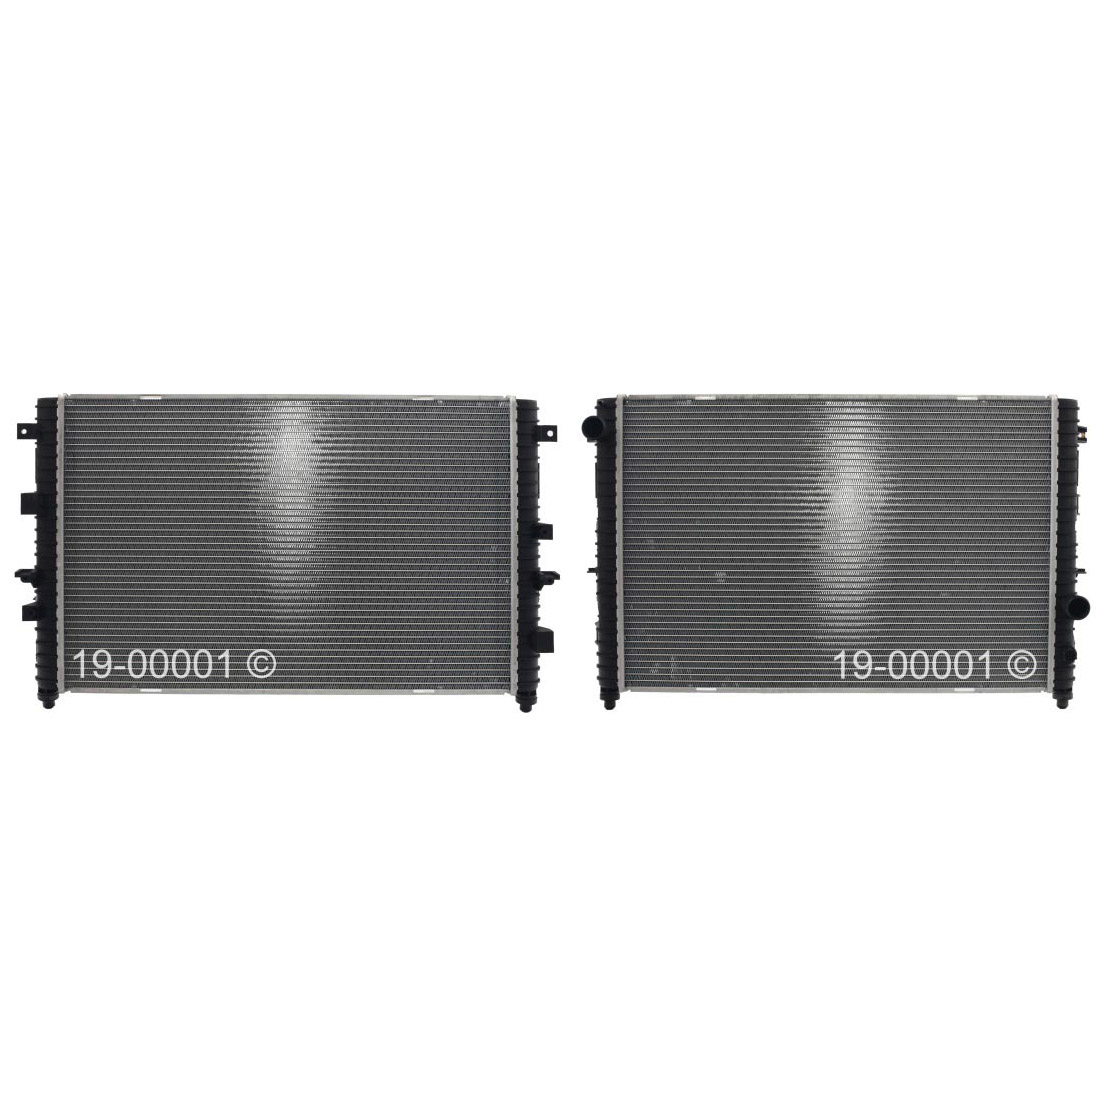 1999 Land Rover Discovery Radiator Series II Models With